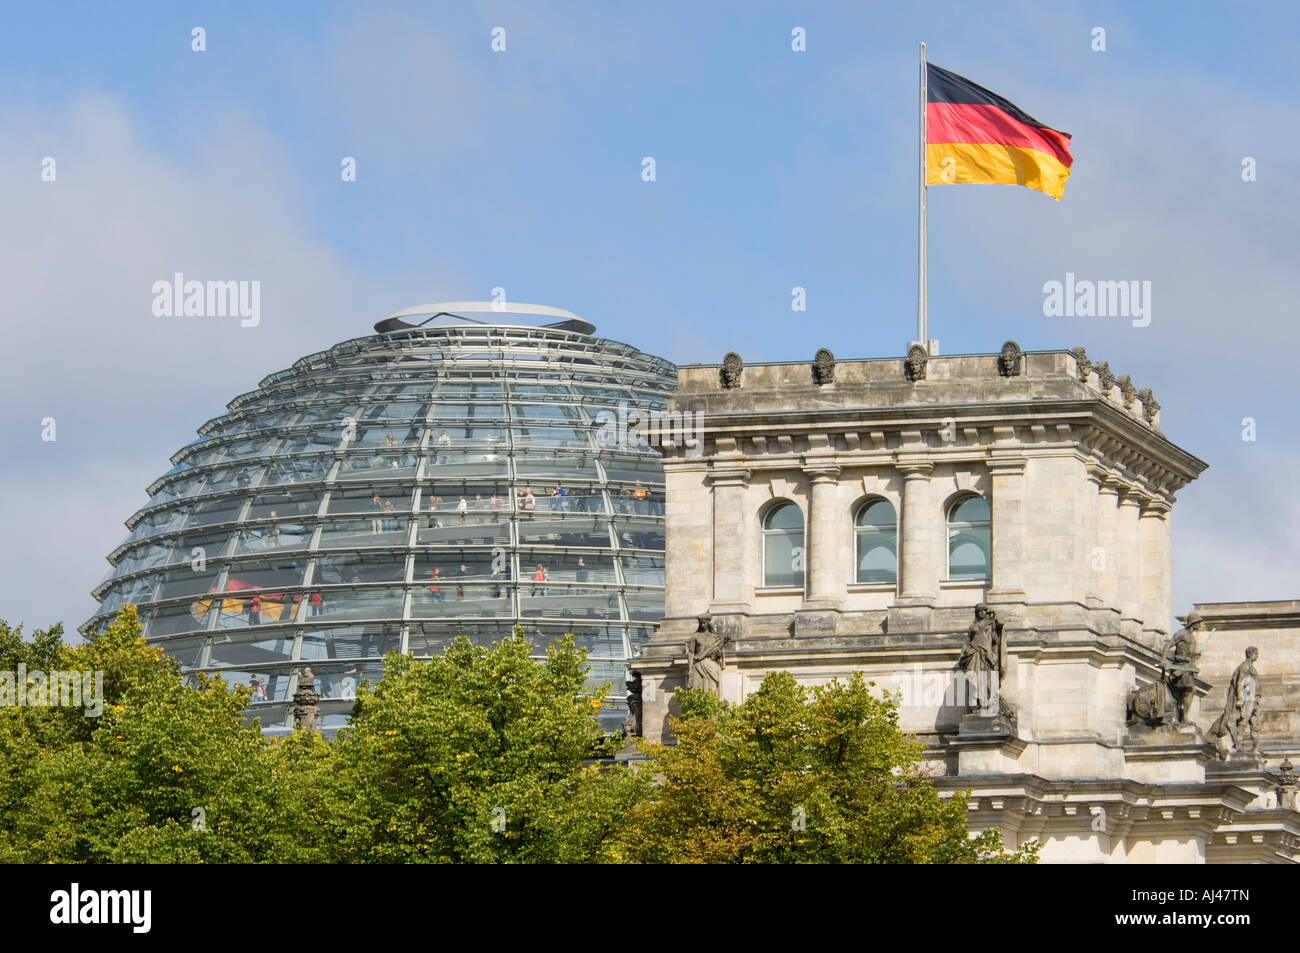 A compressed perspective view of tourists inside the dome on top of the Reichstag - the german parliment building. - Stock Image